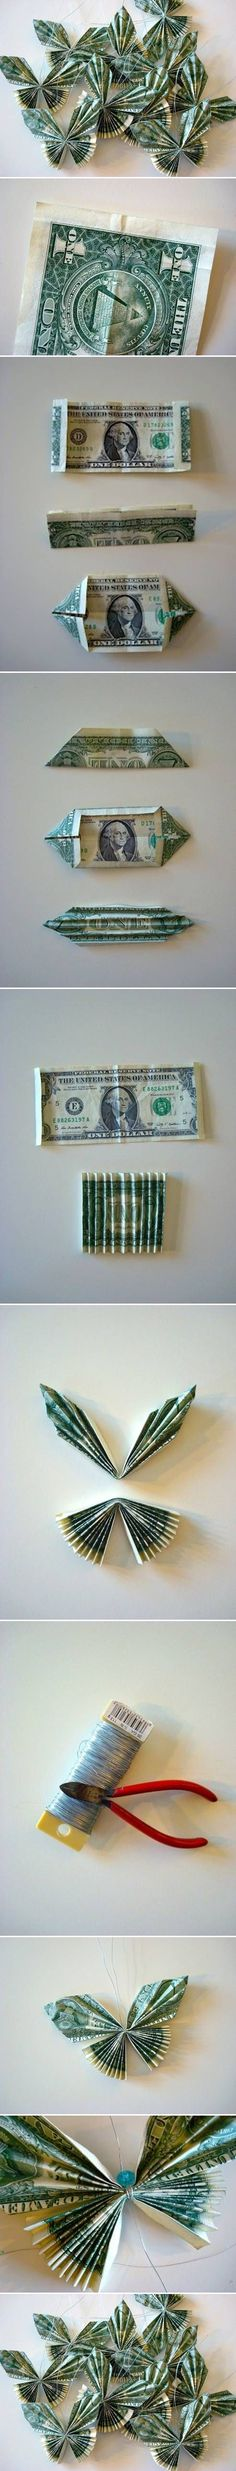 {DIY Dollar Bill Butterfly}